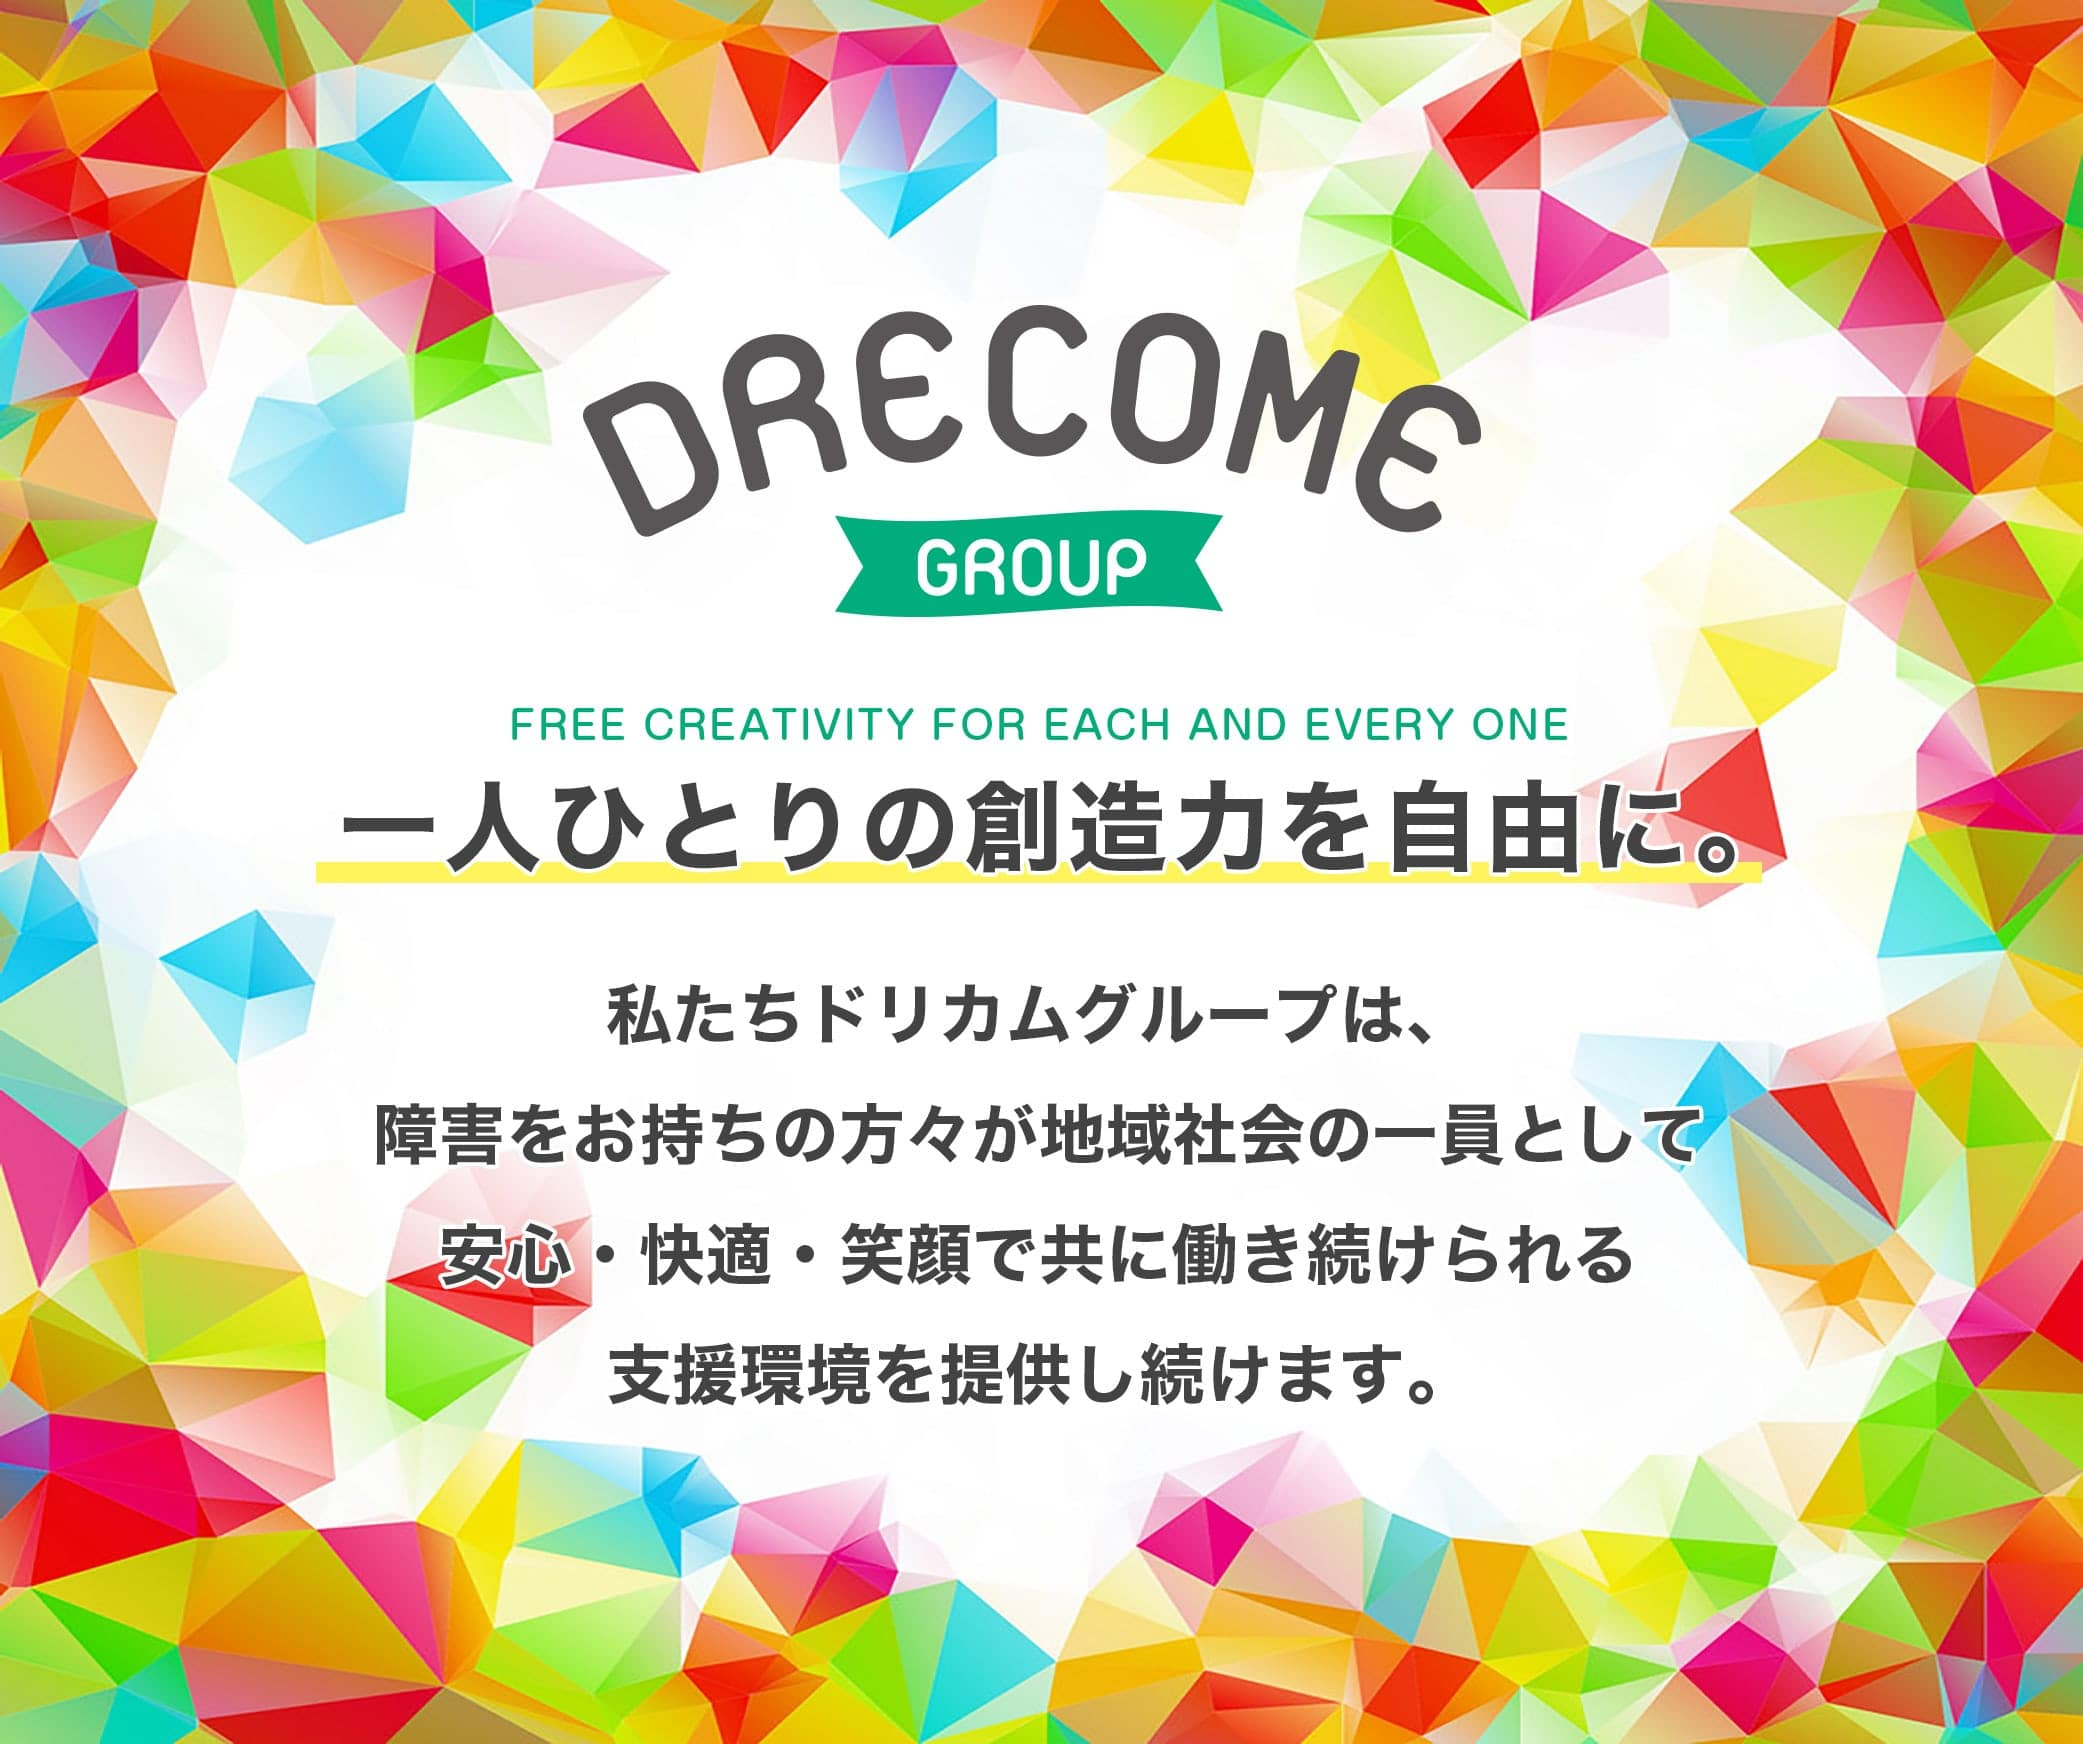 DRECOME GROUP